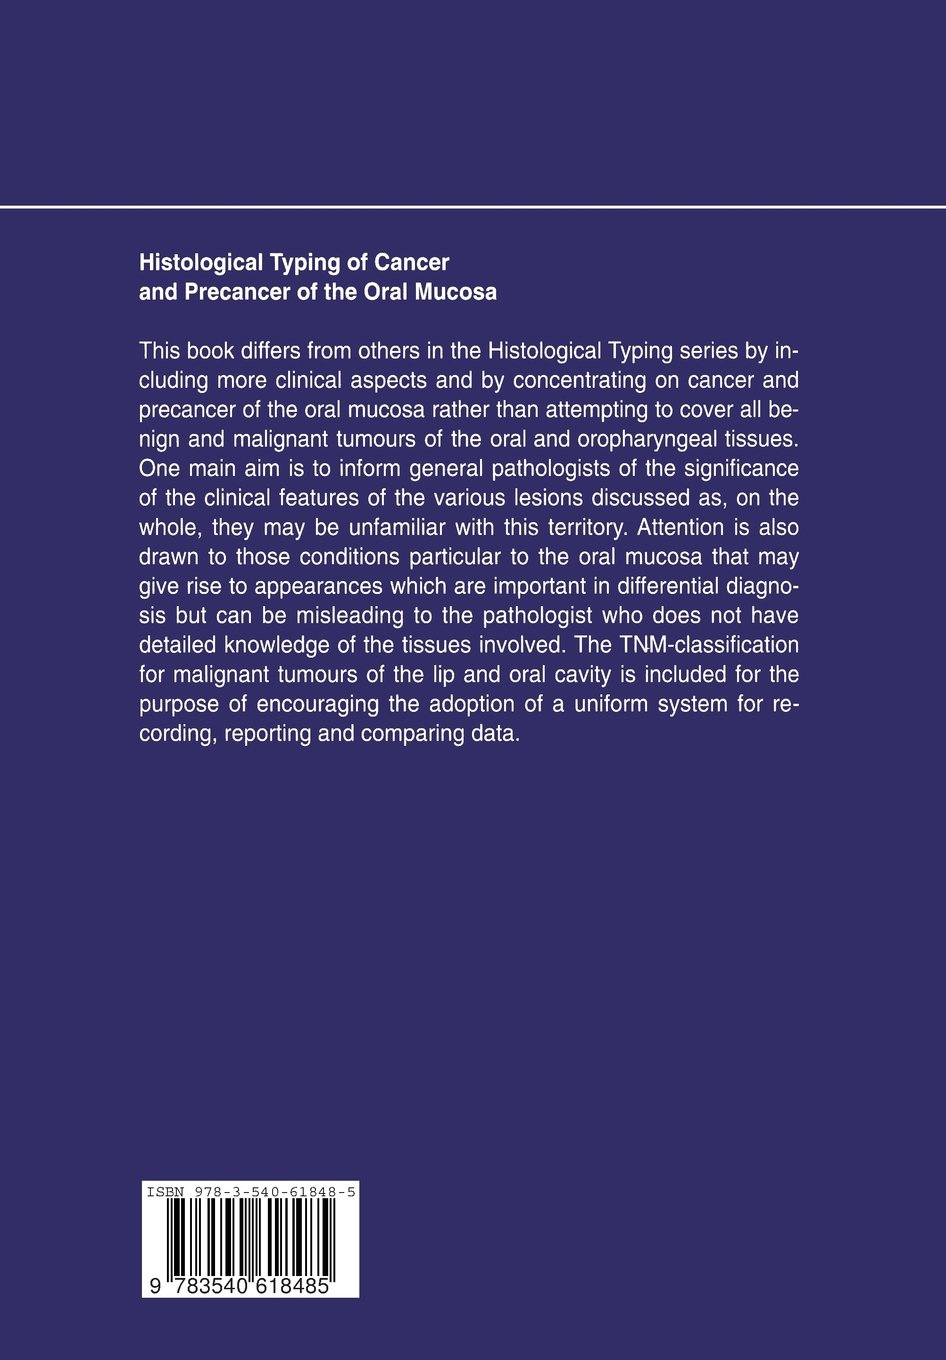 Histological Typing of Cancer and Precancer of the Oral Mucosa: In Collaboration with L.H.Sobin and Pathologists in 9 Countries (WHO. World Health ... Histological Classification of Tumours)